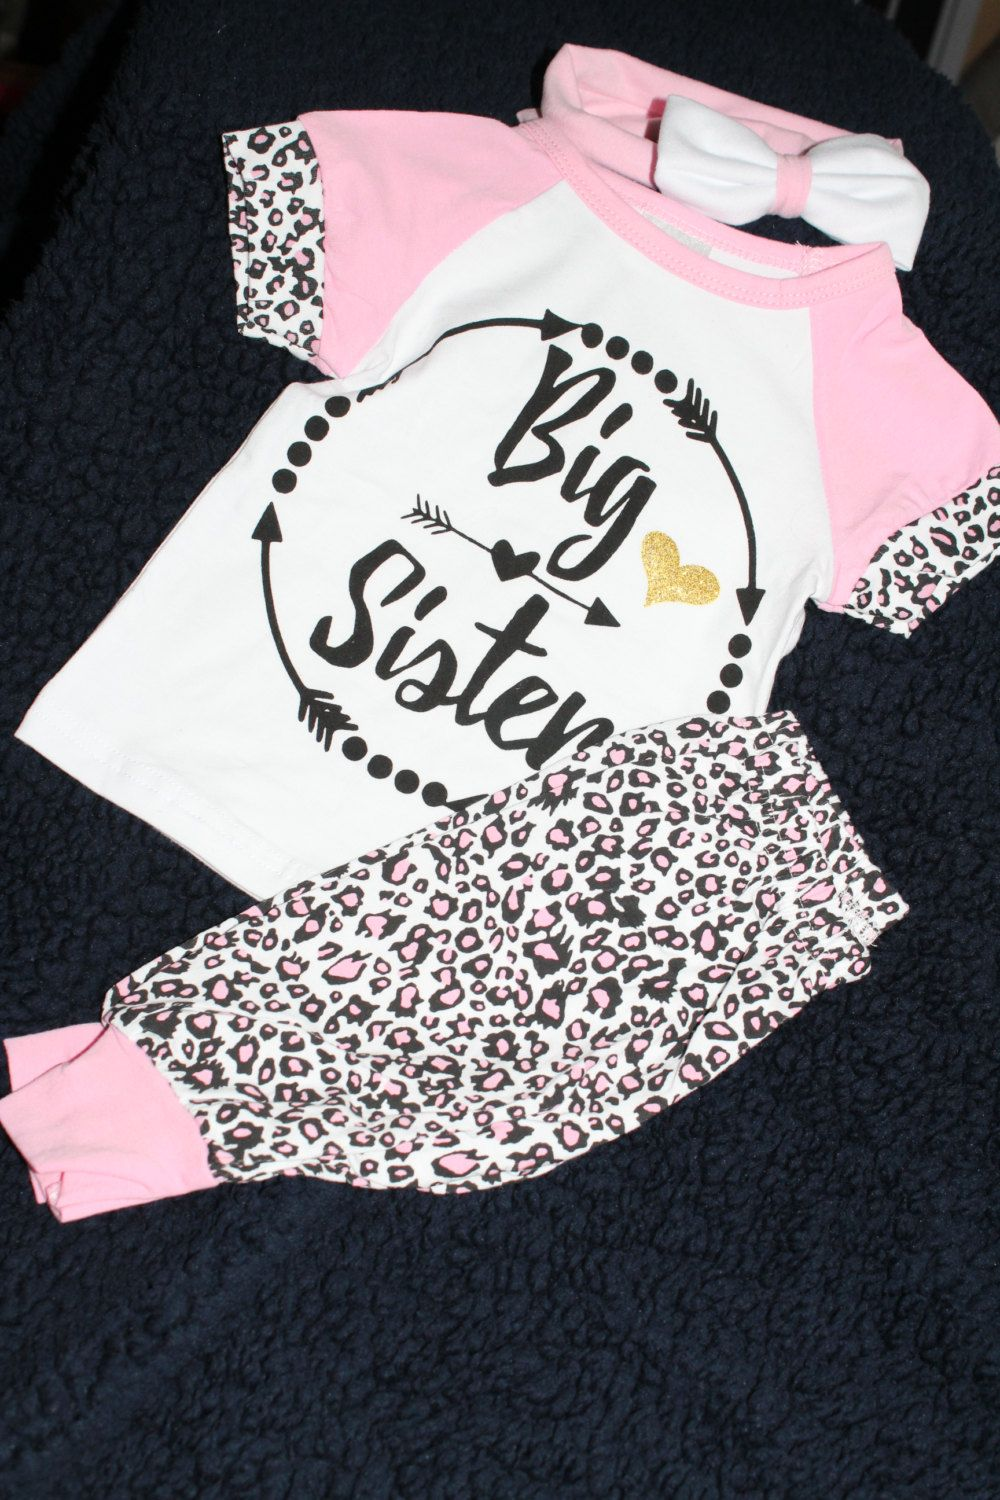 Toddler Girl Big Sister Pink Leopard Outfit Cute 12-18 Months 3 piece outfit set by CaughtYACreations on Etsy